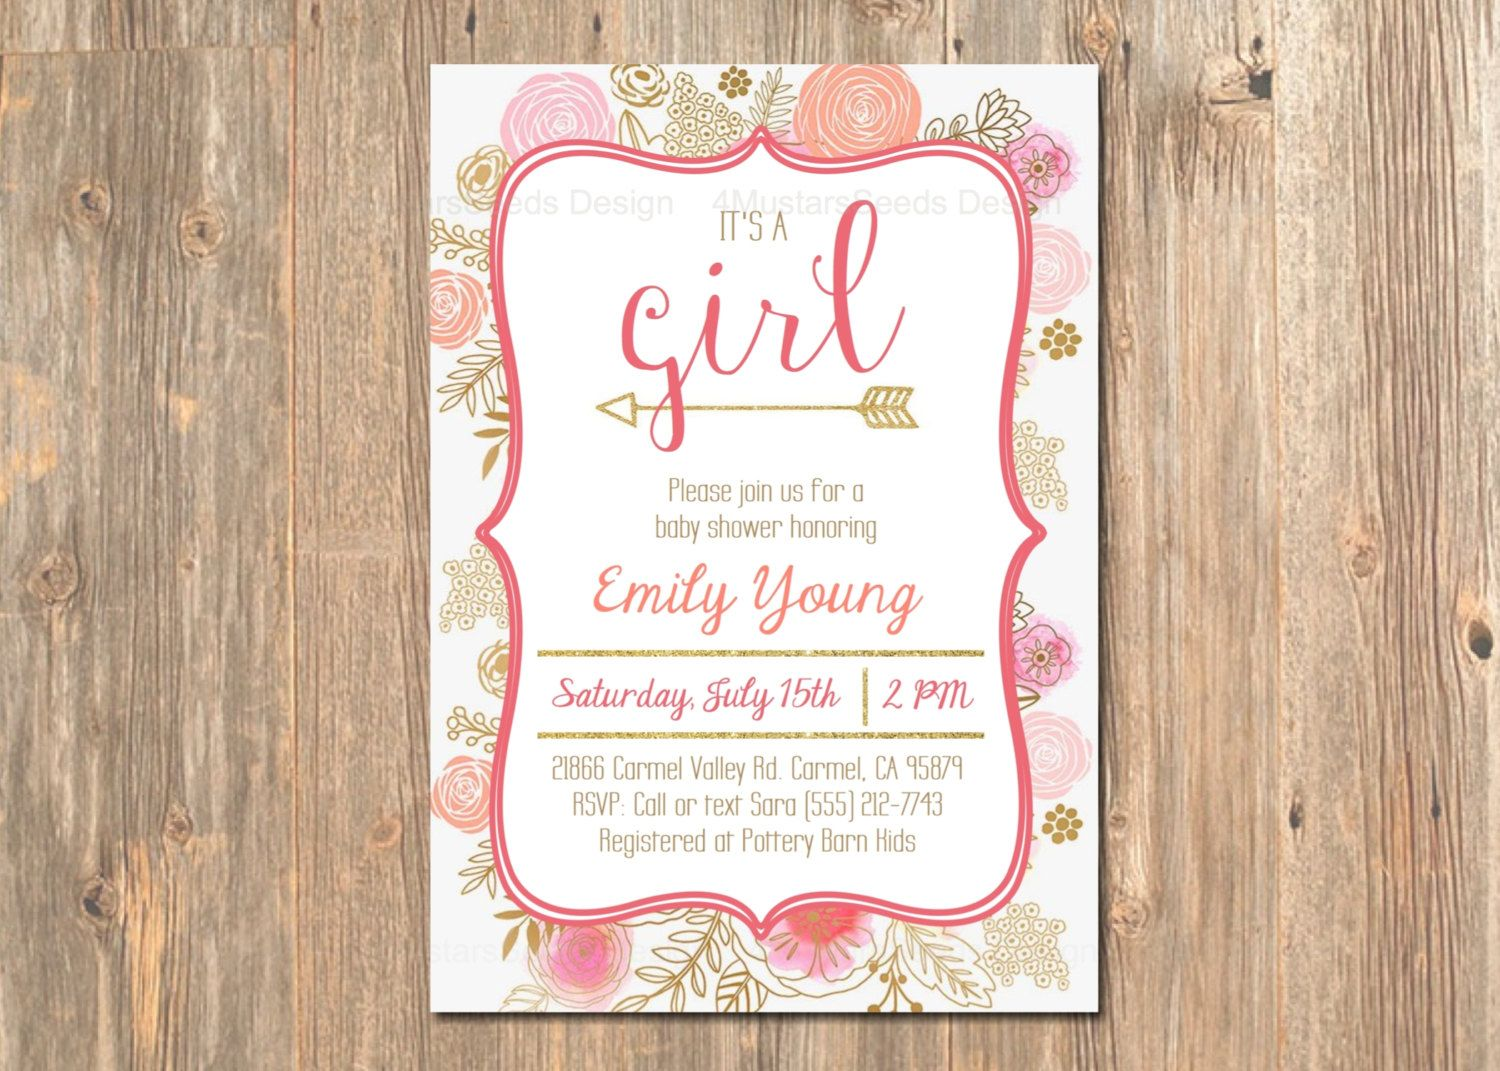 happy birthday invitation pictures%0A First Birthday Invitation  Girl u    s Party Invite  Rustic  Pink  u     Gold   Printable  Tribal  Arrow  Modern Invitations  Invites  Girl by on Etsy